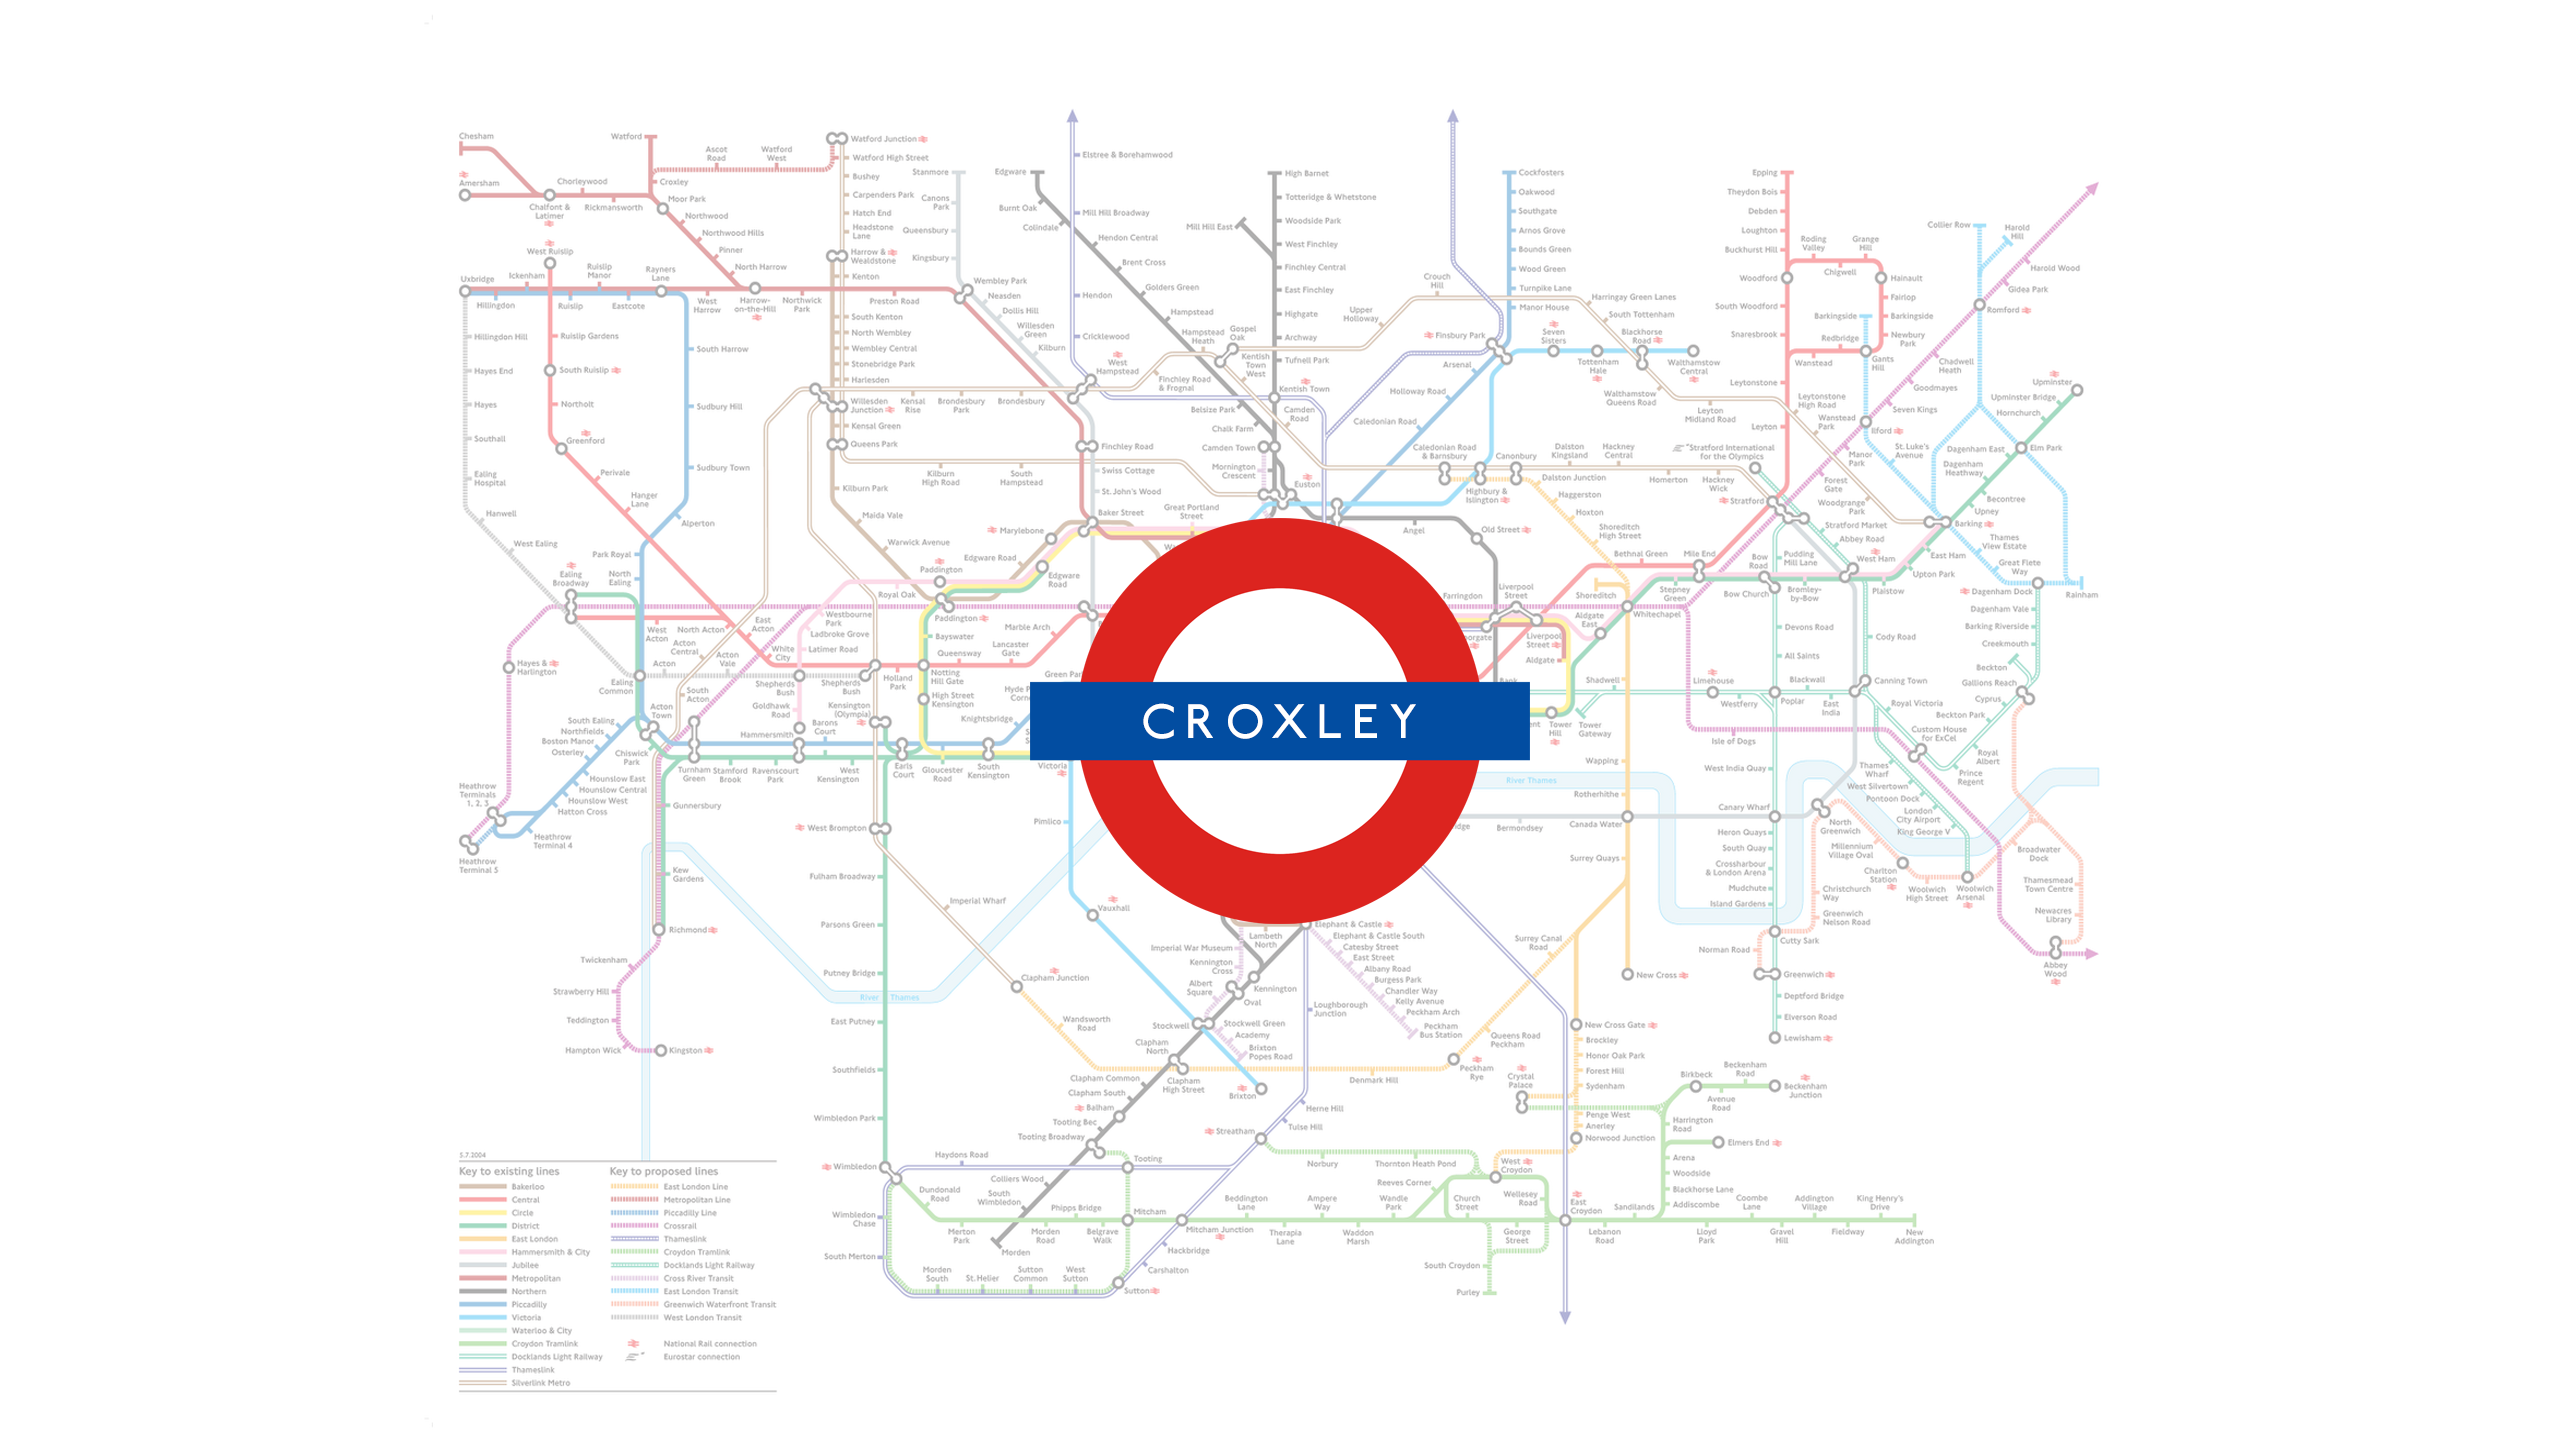 Croxley (Map)